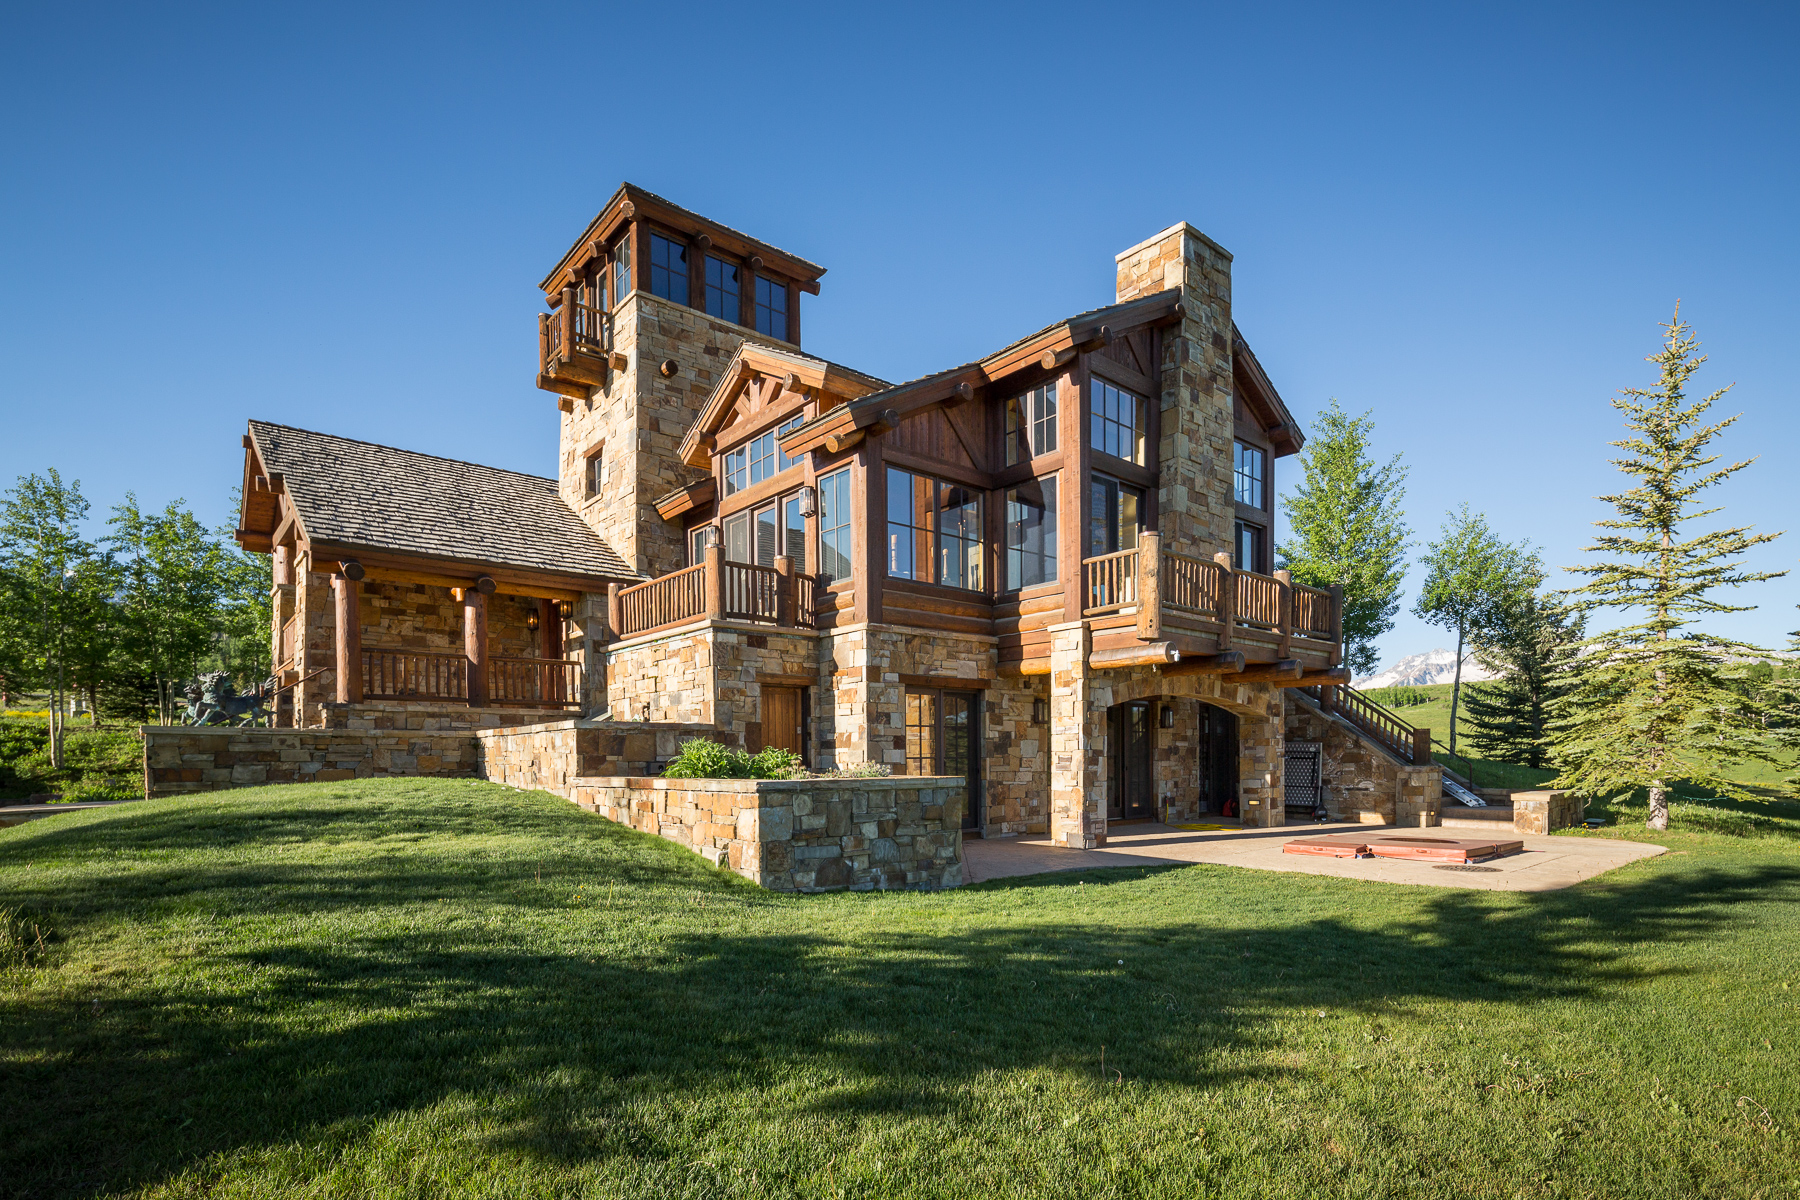 Single Family Home for Sale at 139 Adams Ranch Road Telluride, Colorado, 81435 United States